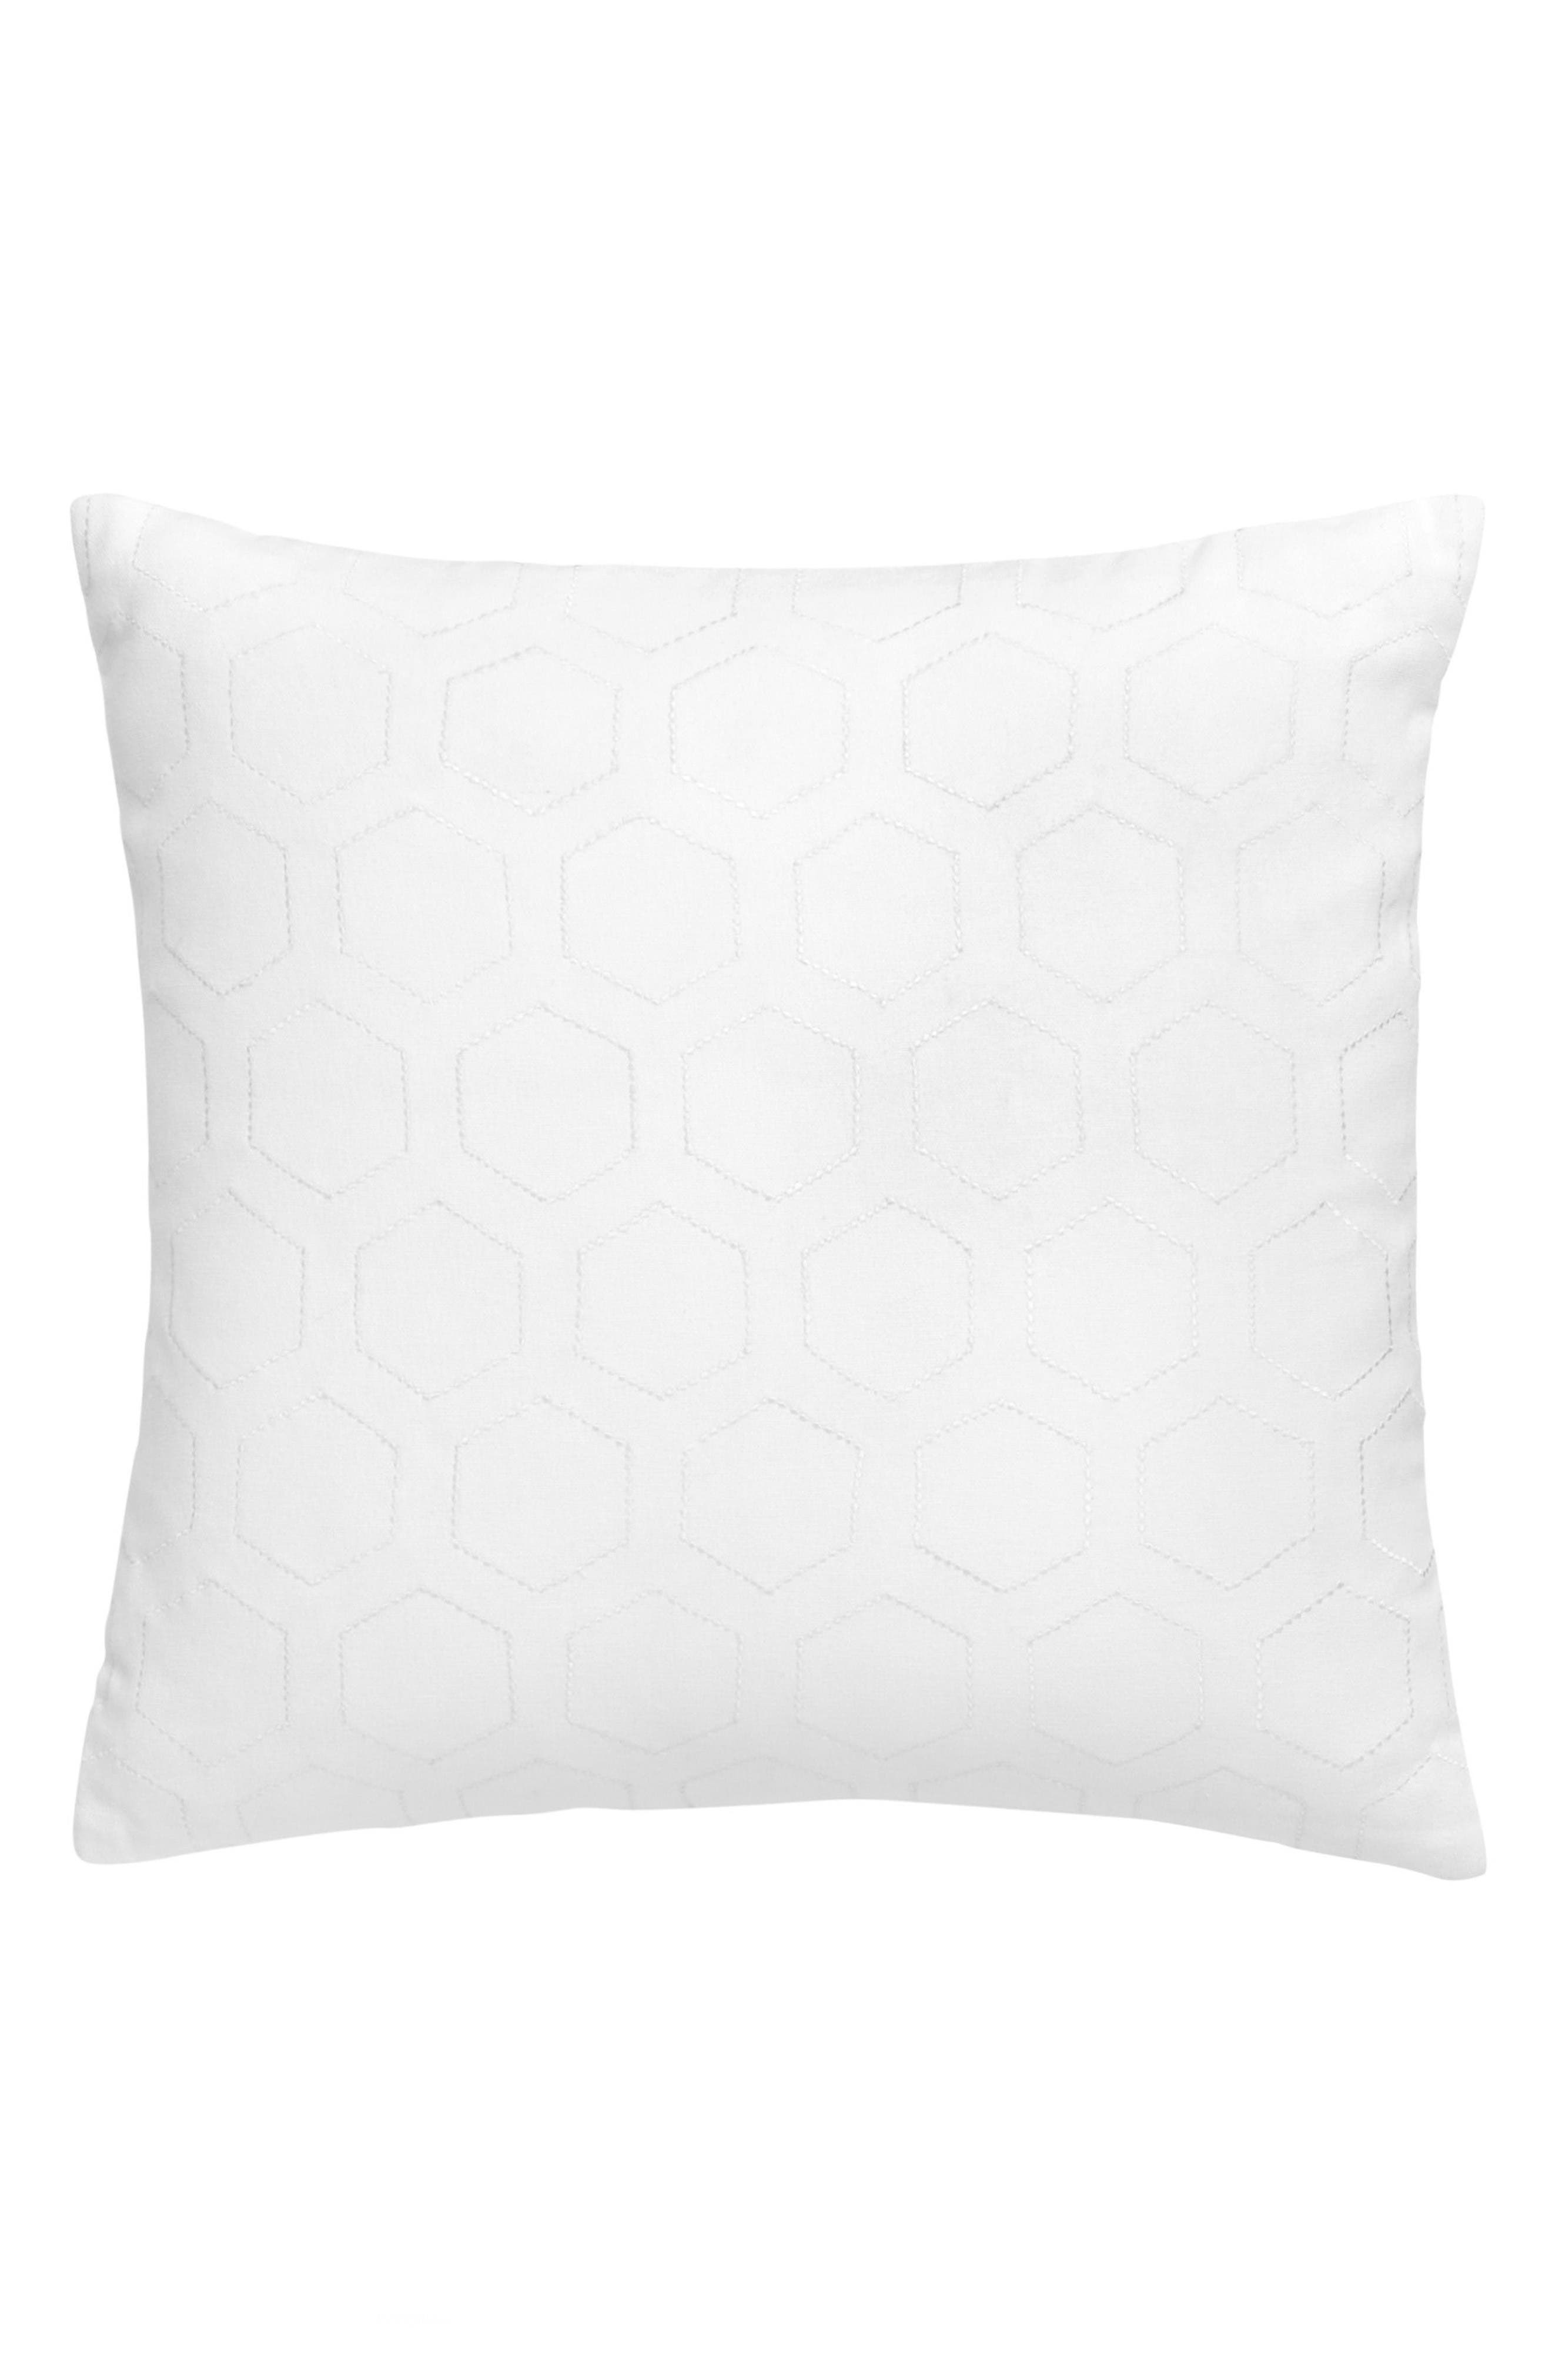 Blackpoint Hex Accent Pillow,                         Main,                         color, White